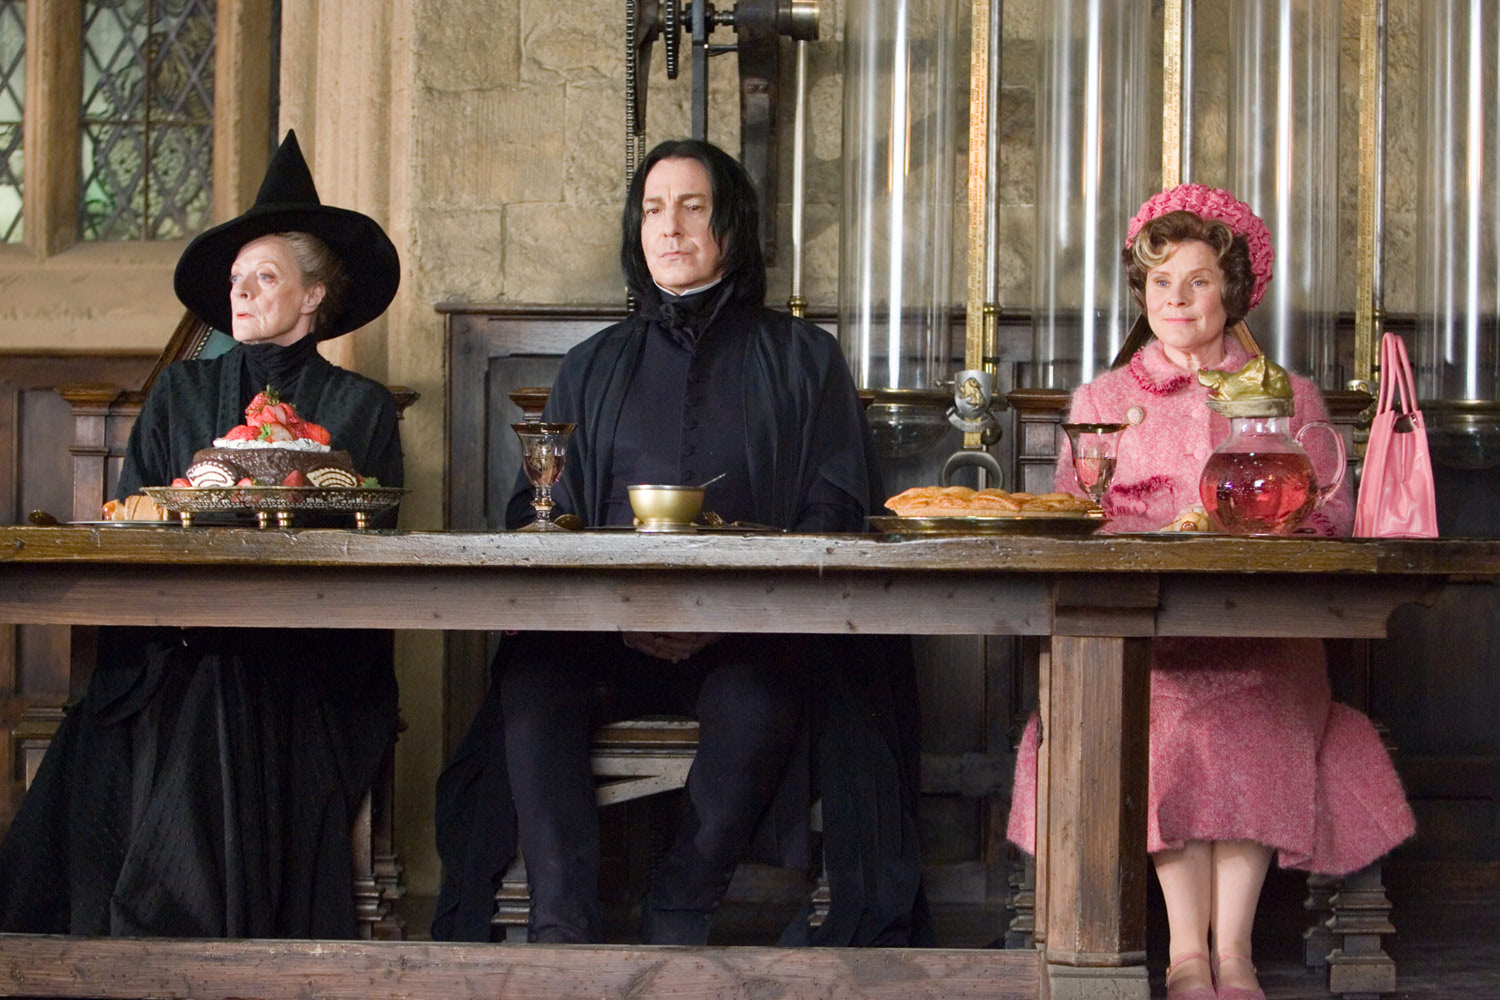 McGonagall, Snape and Umbridge